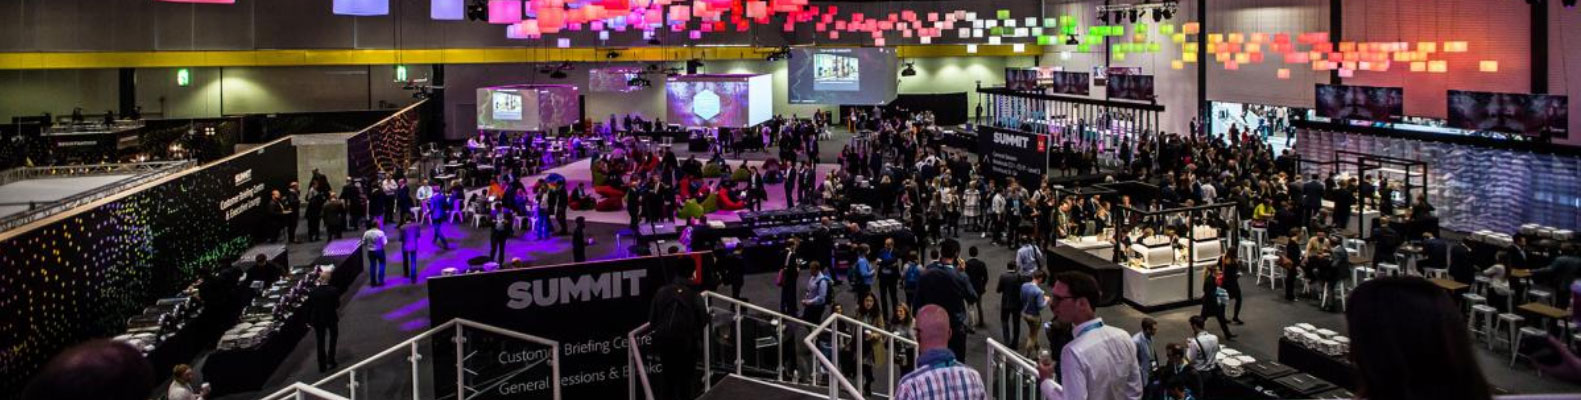 Equipment hire for conferences, exhibitions & trade shows